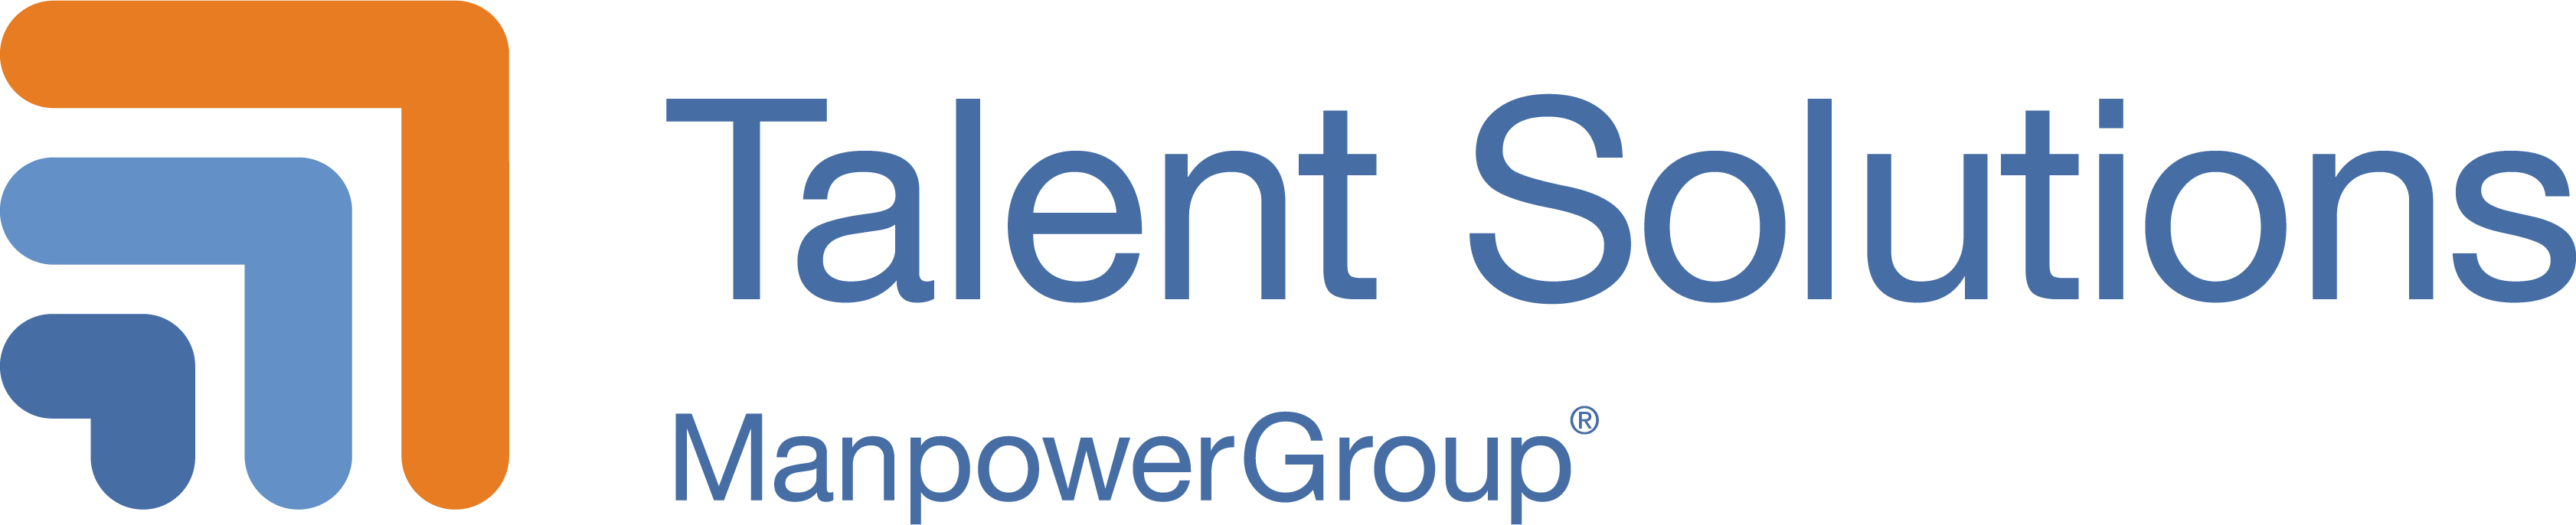 ManpowerGroup Talent Solutions Web Horizontal Logo for Light Background